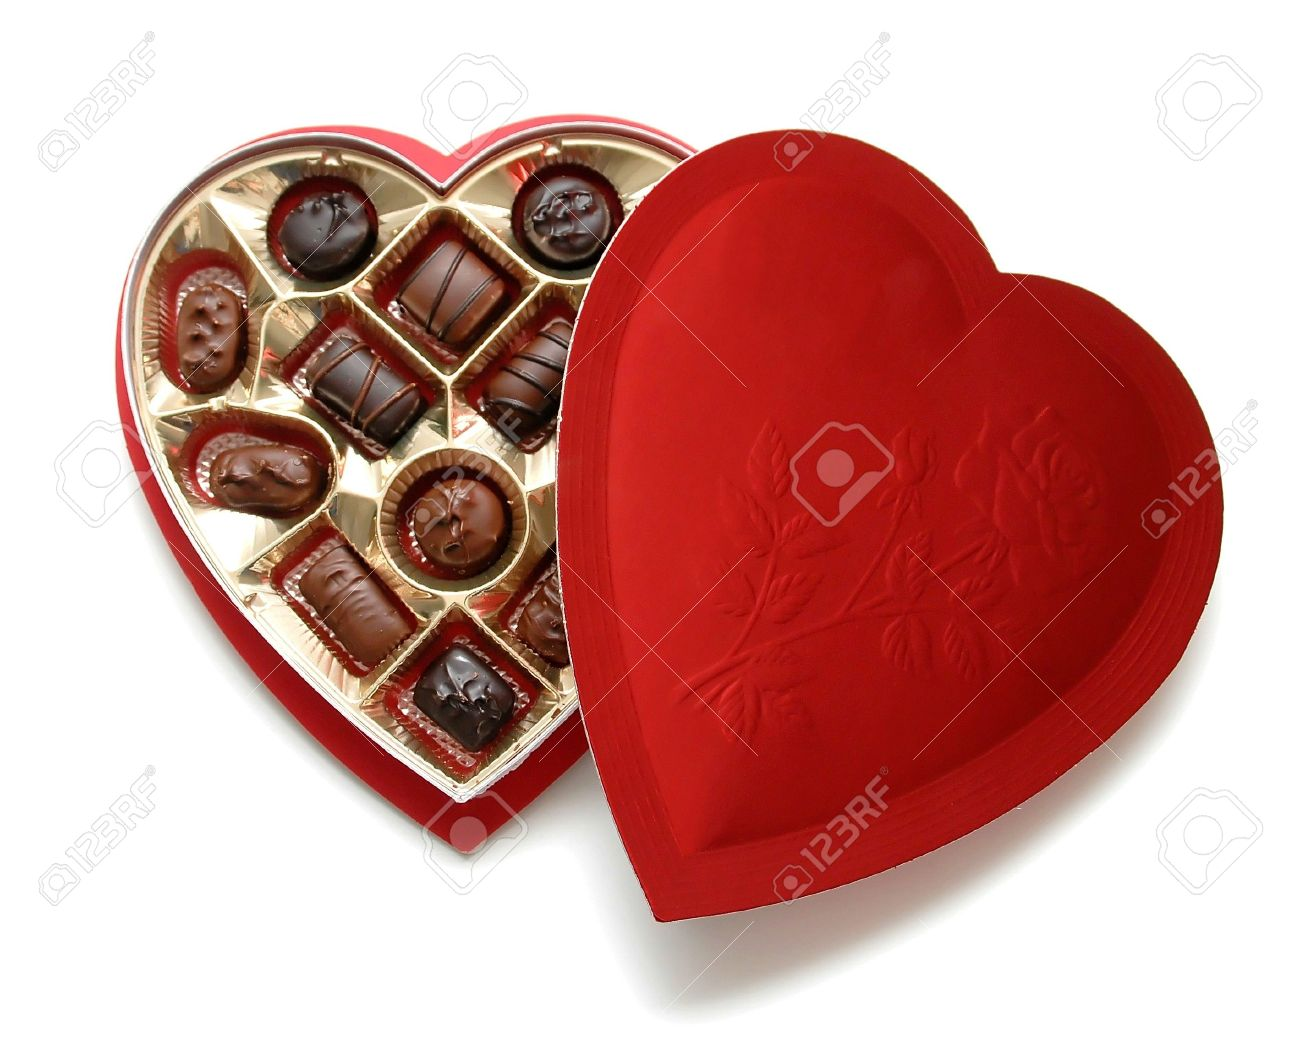 Heart Shaped Box Of Chocolates Stock Photo, Picture And Royalty ...